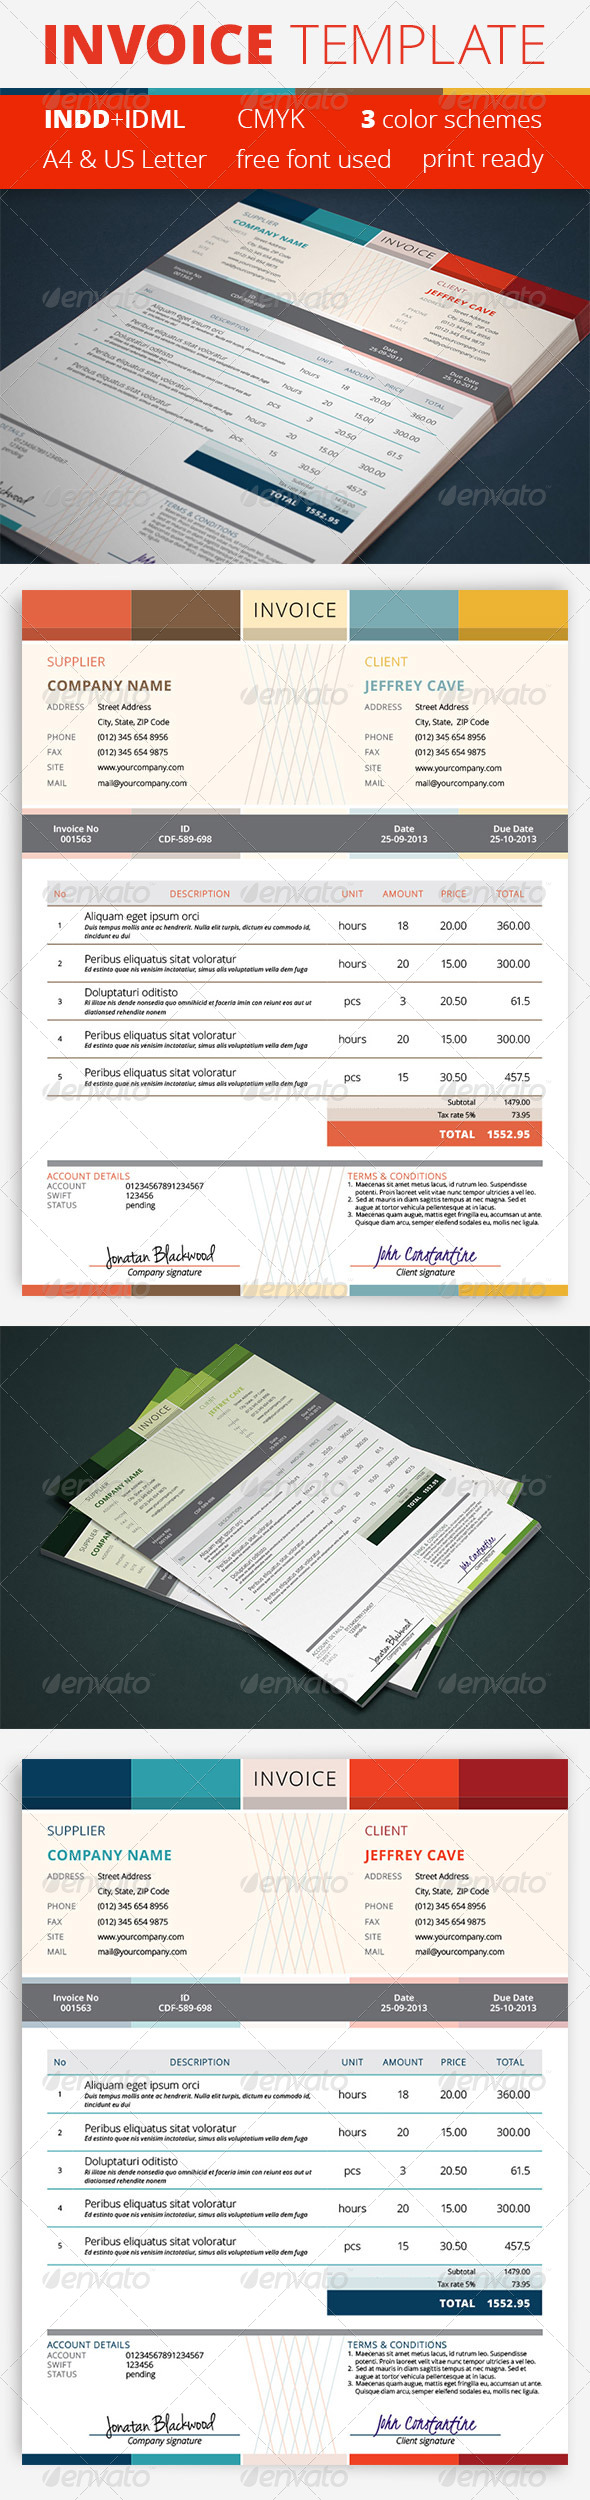 GraphicRiver Invoice Template 5383872